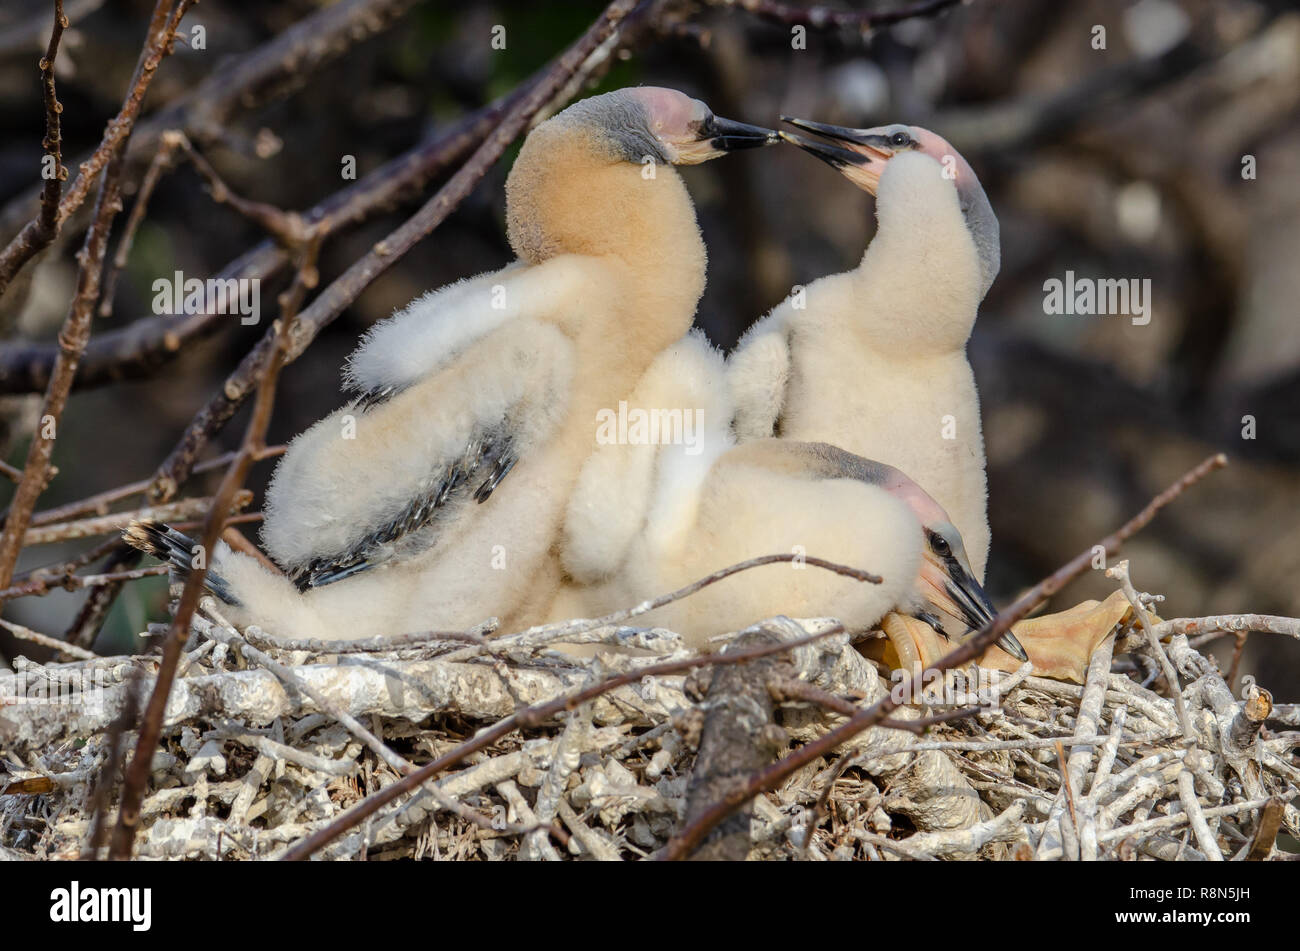 Anhinga chicks (Anhinga anhinga) in nest in Florida's wetlands - Stock Image